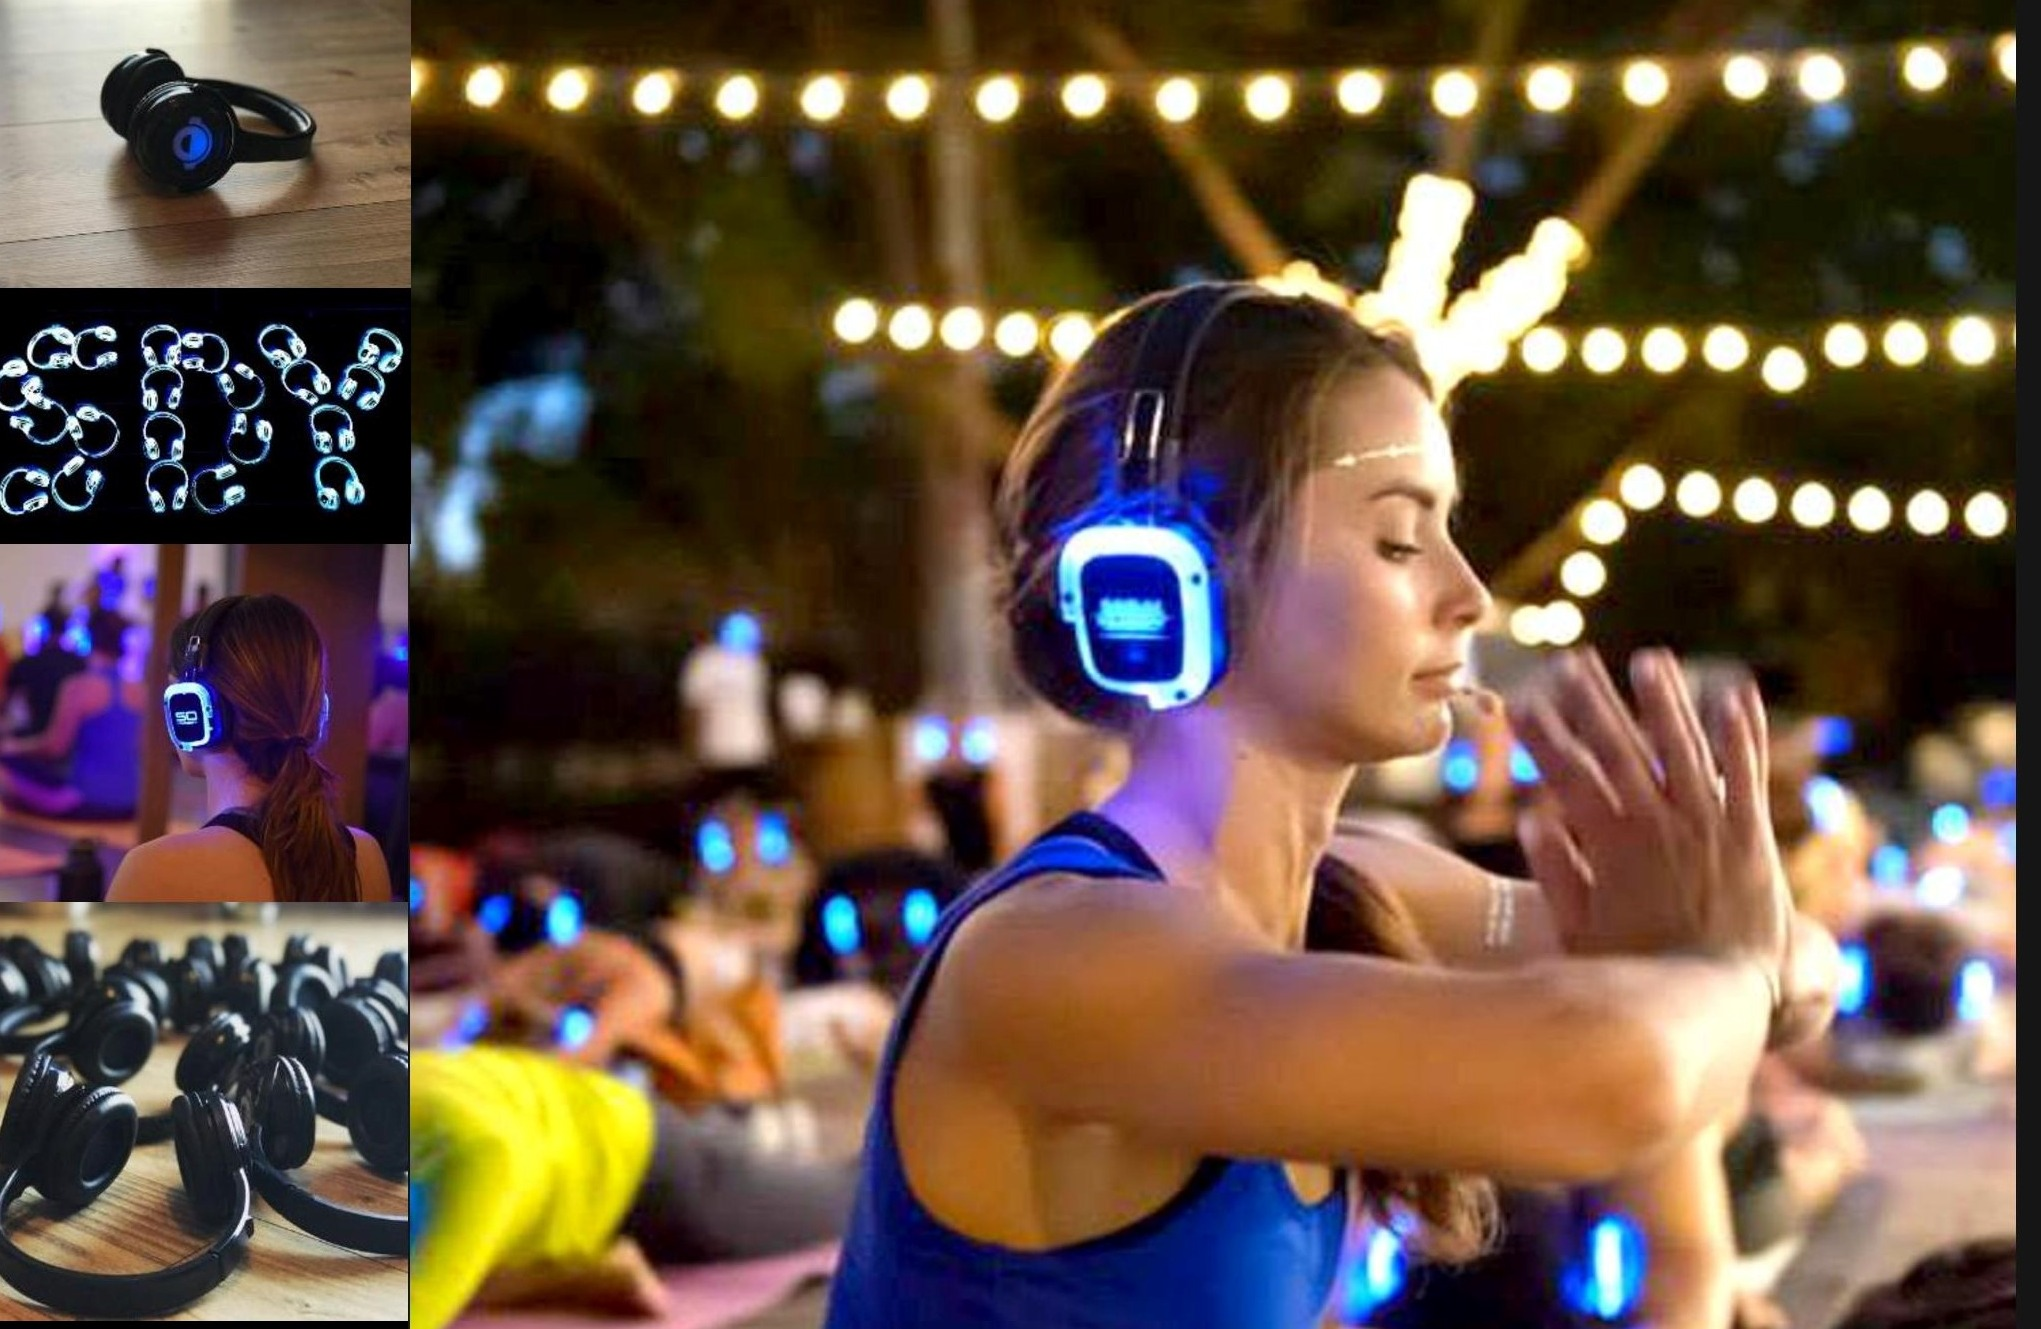 Silent disco yoga is coming to Stroud